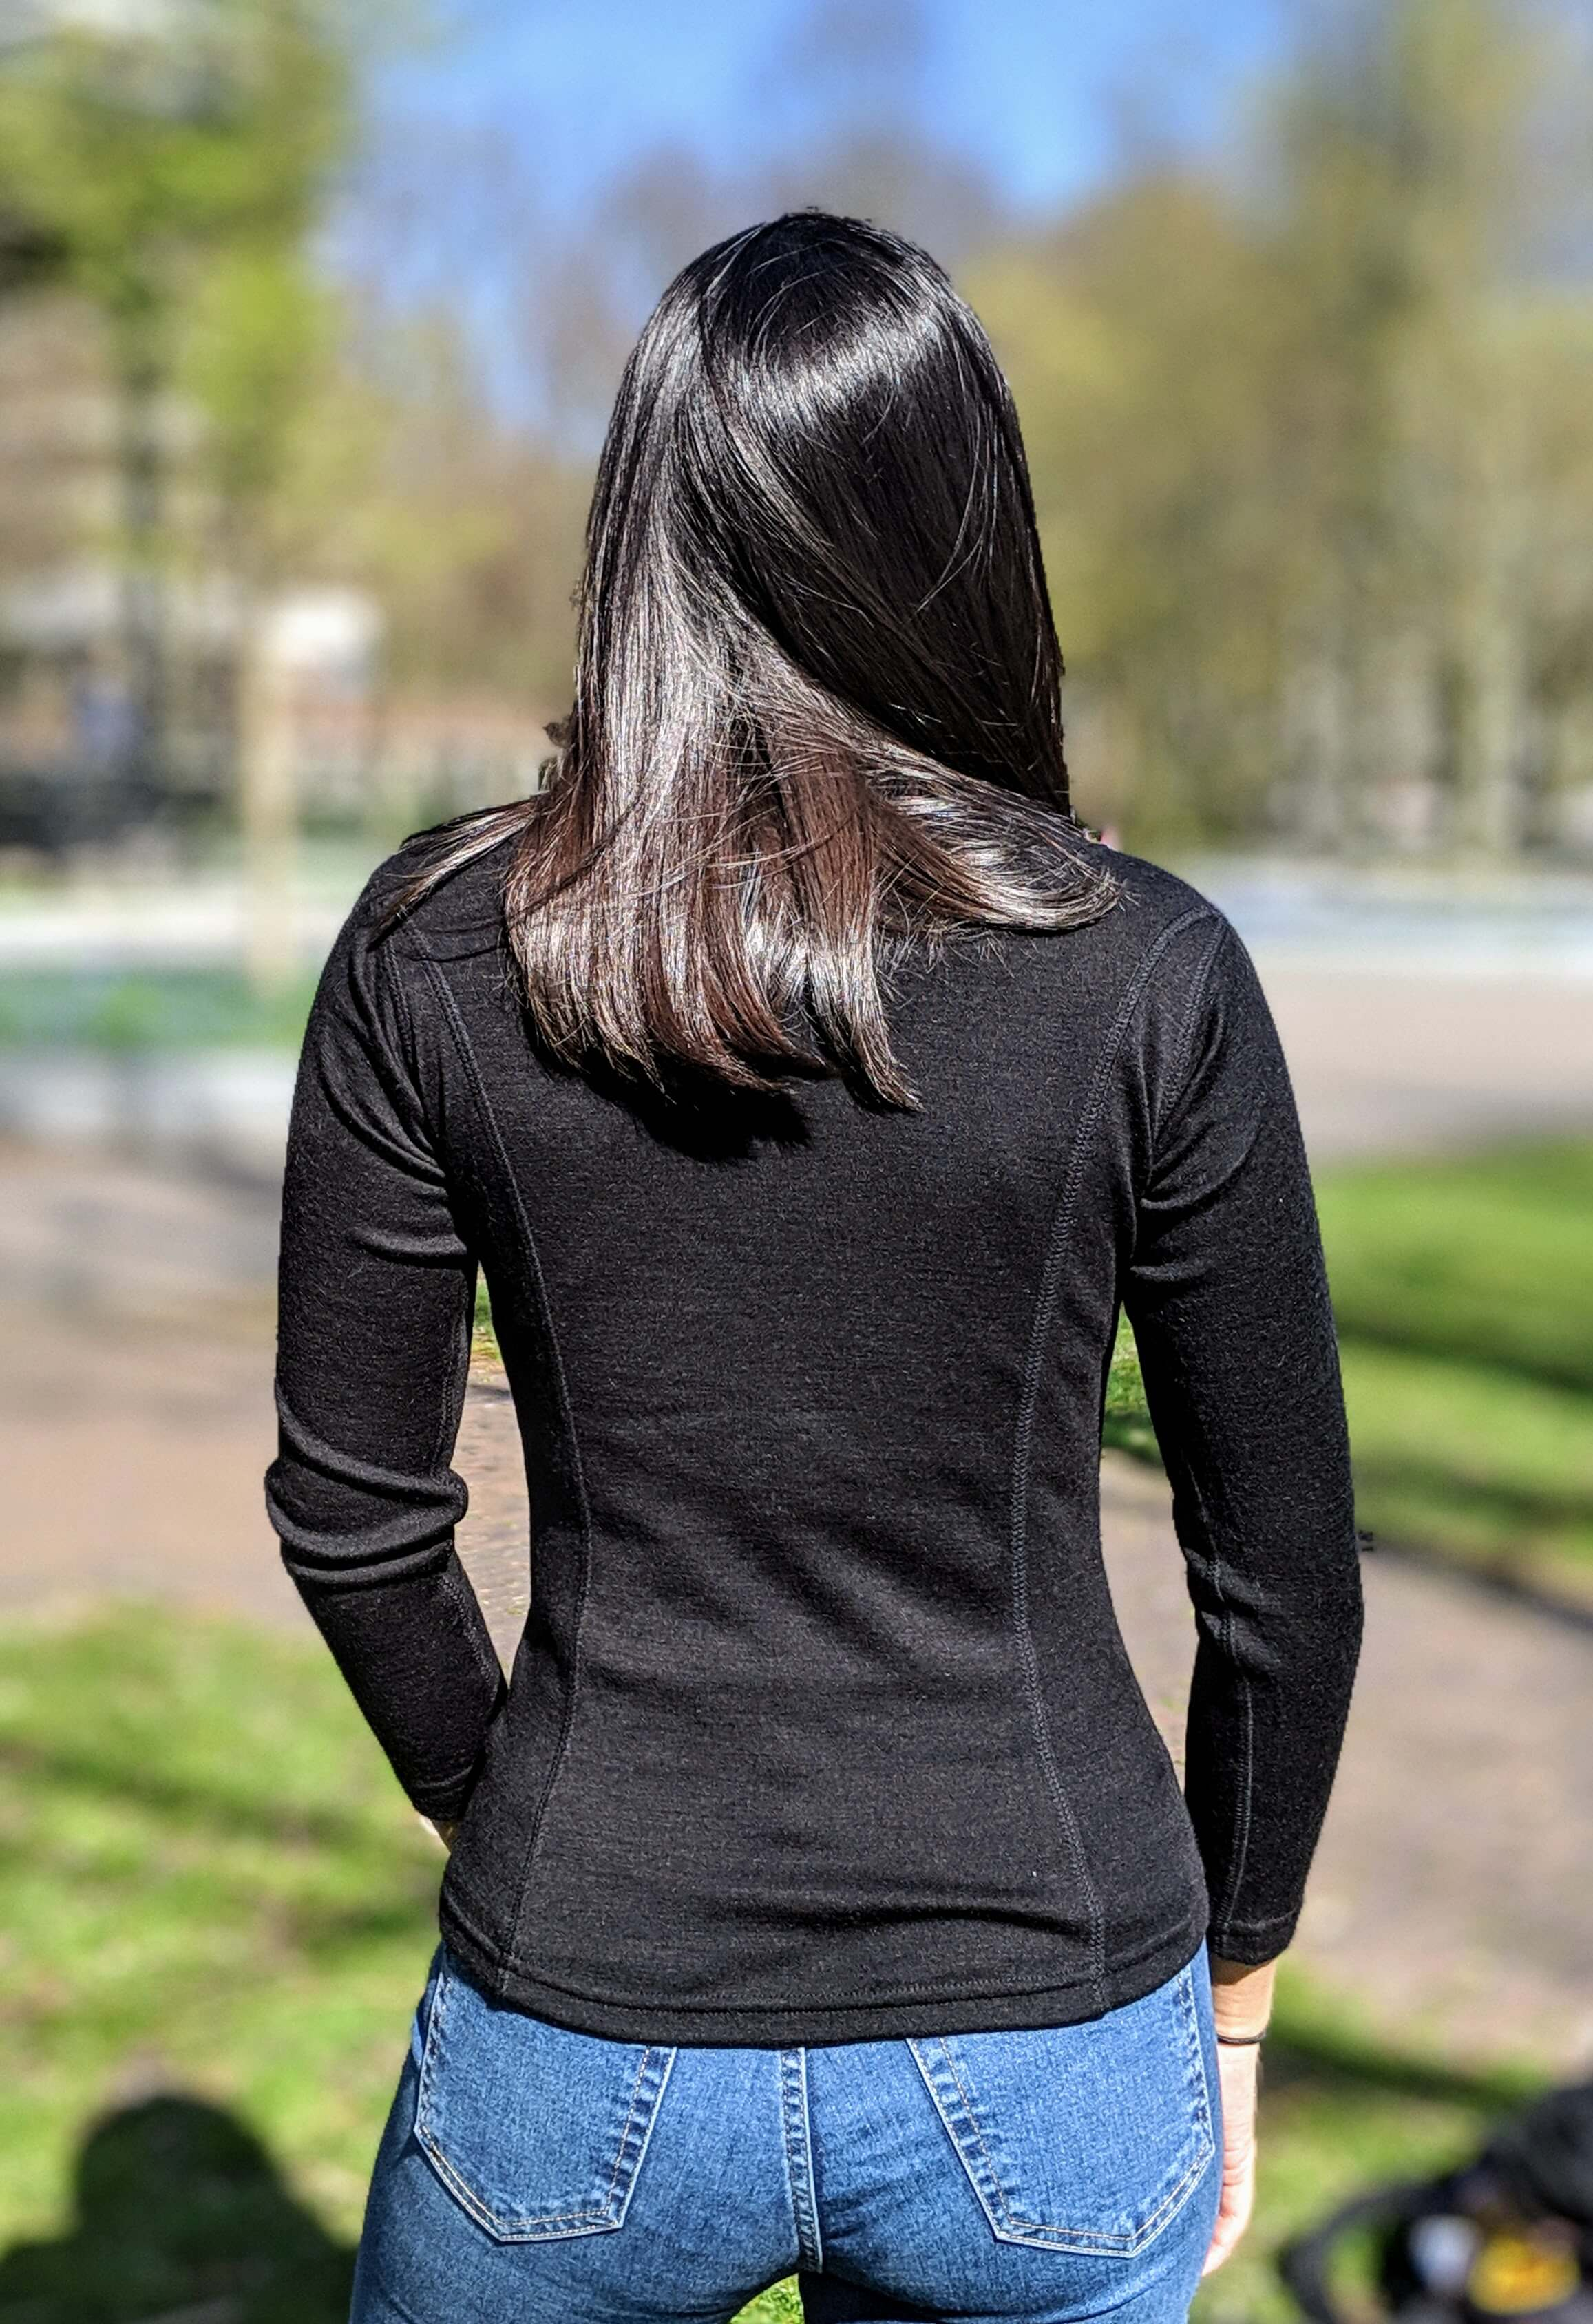 Backside of woman wearing black alpaca wool mid layer in park